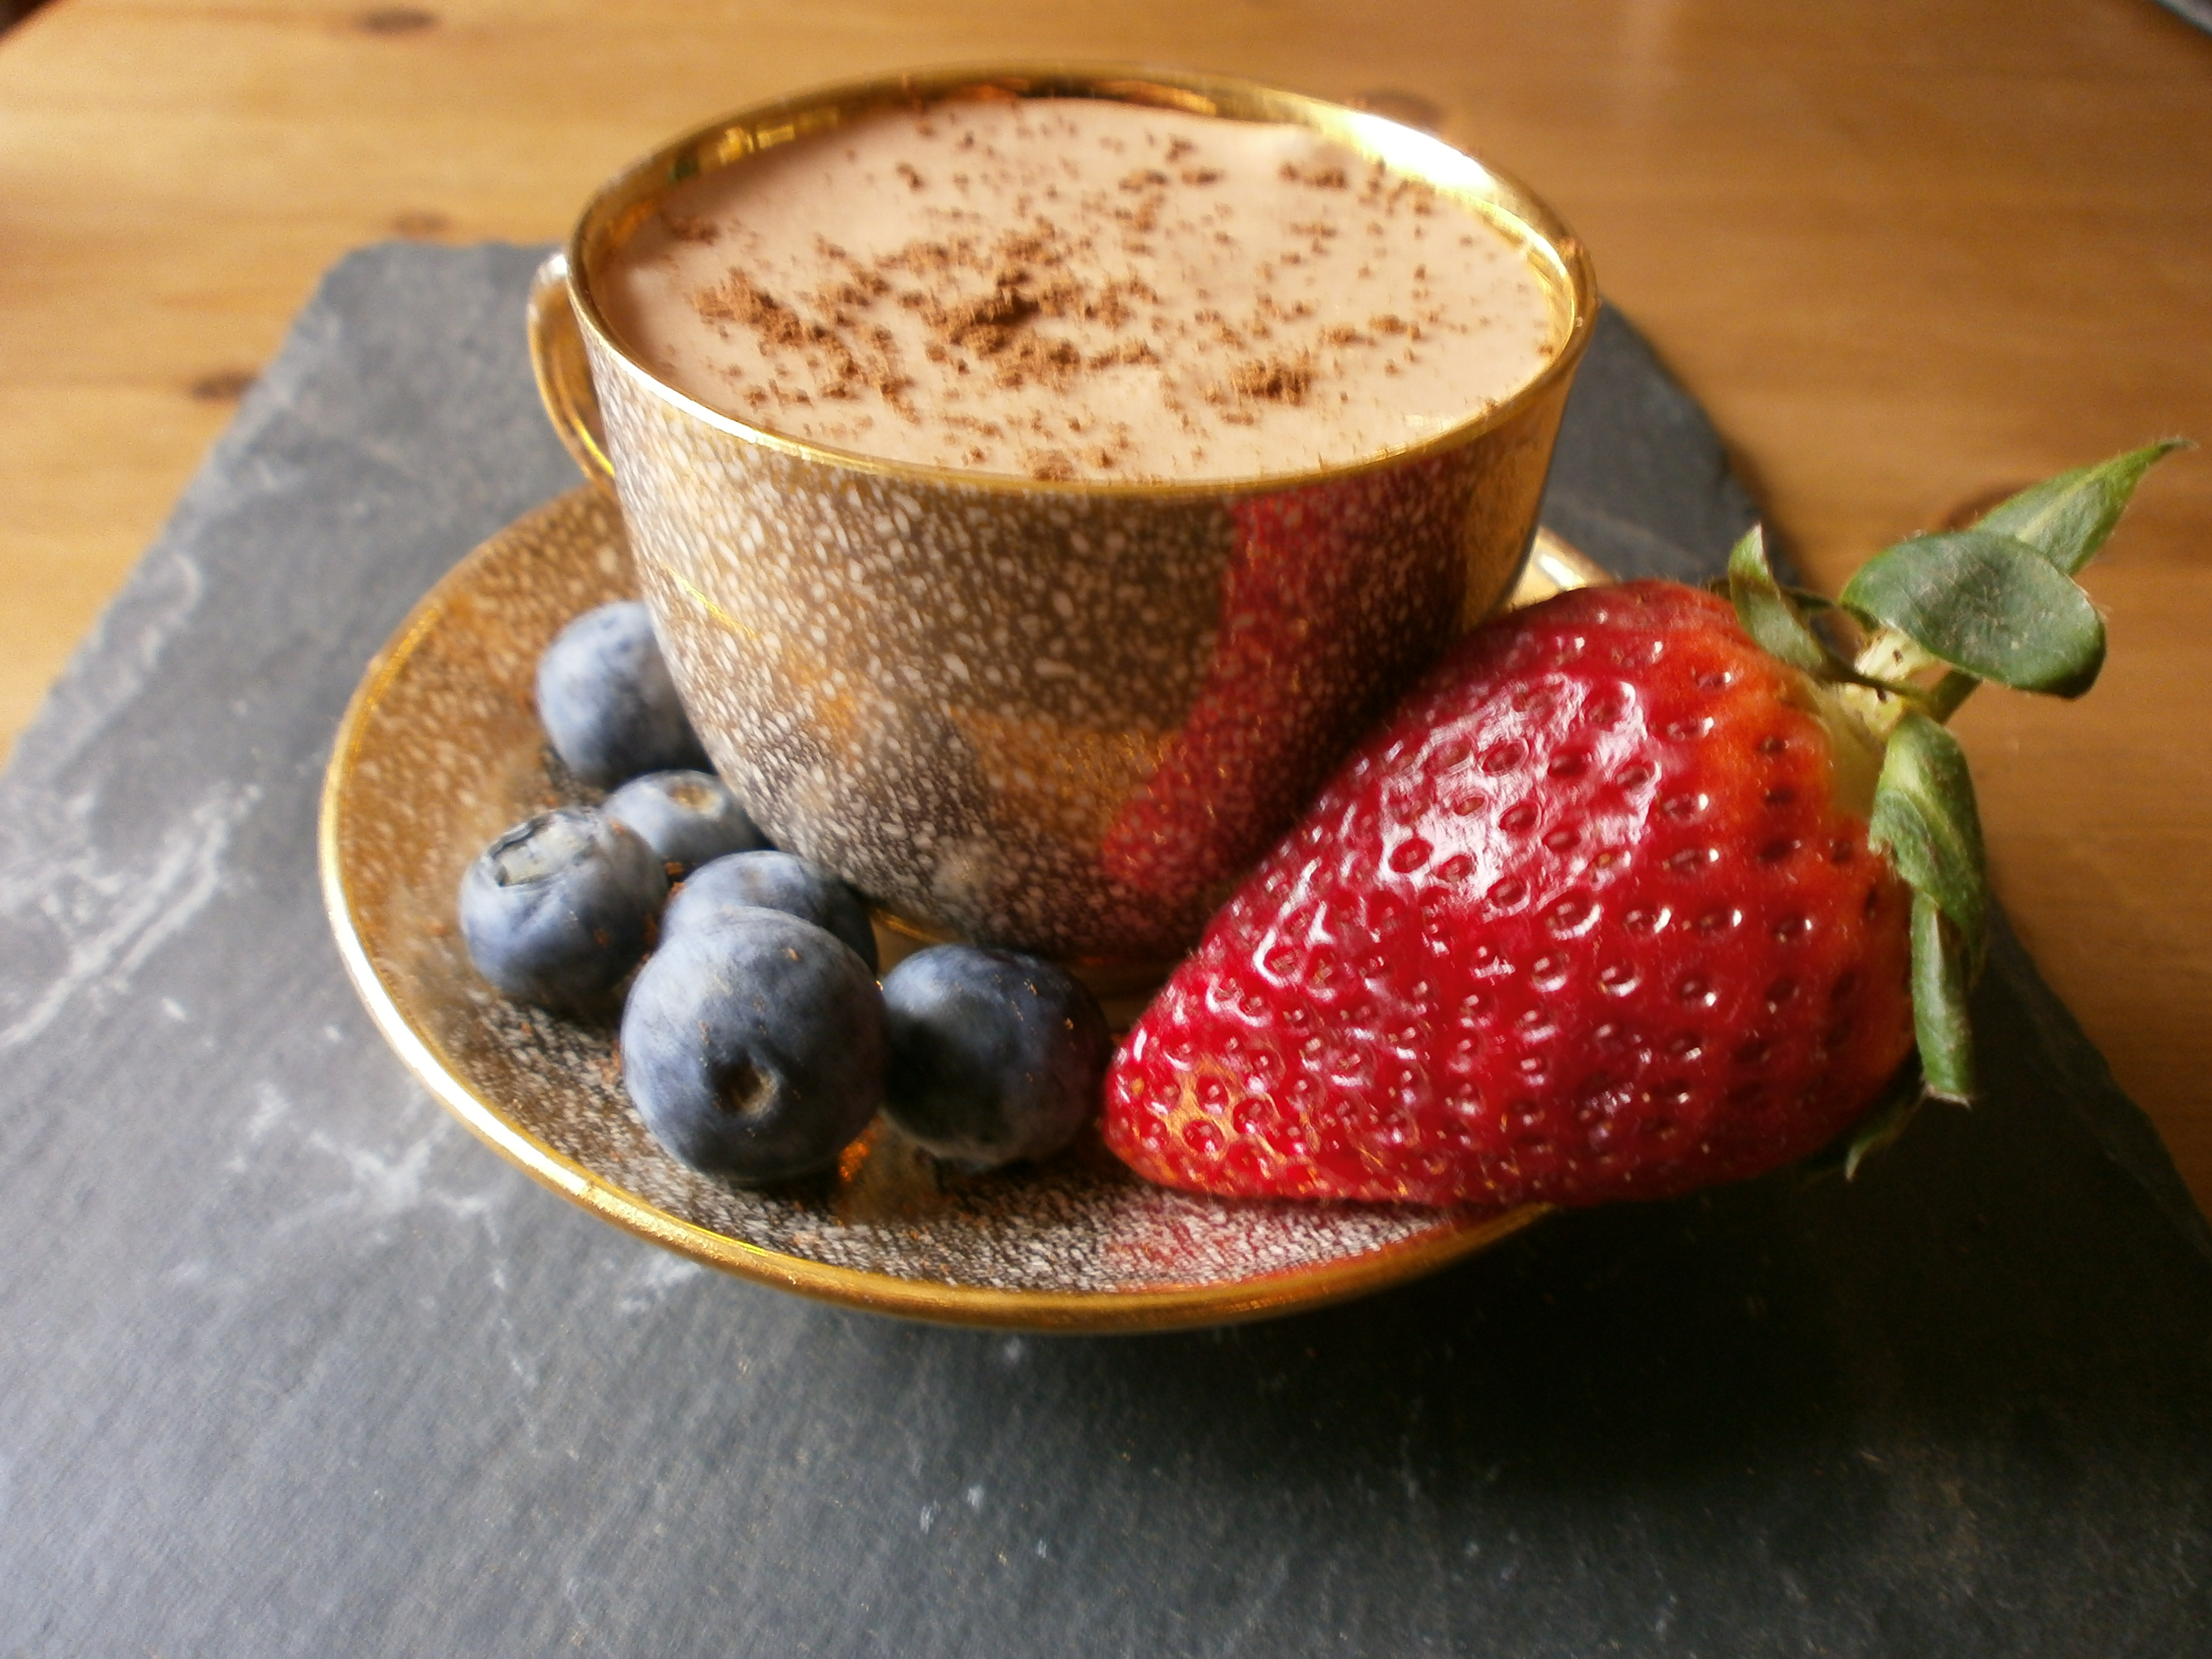 how to make chocolate mousse jamie oliver